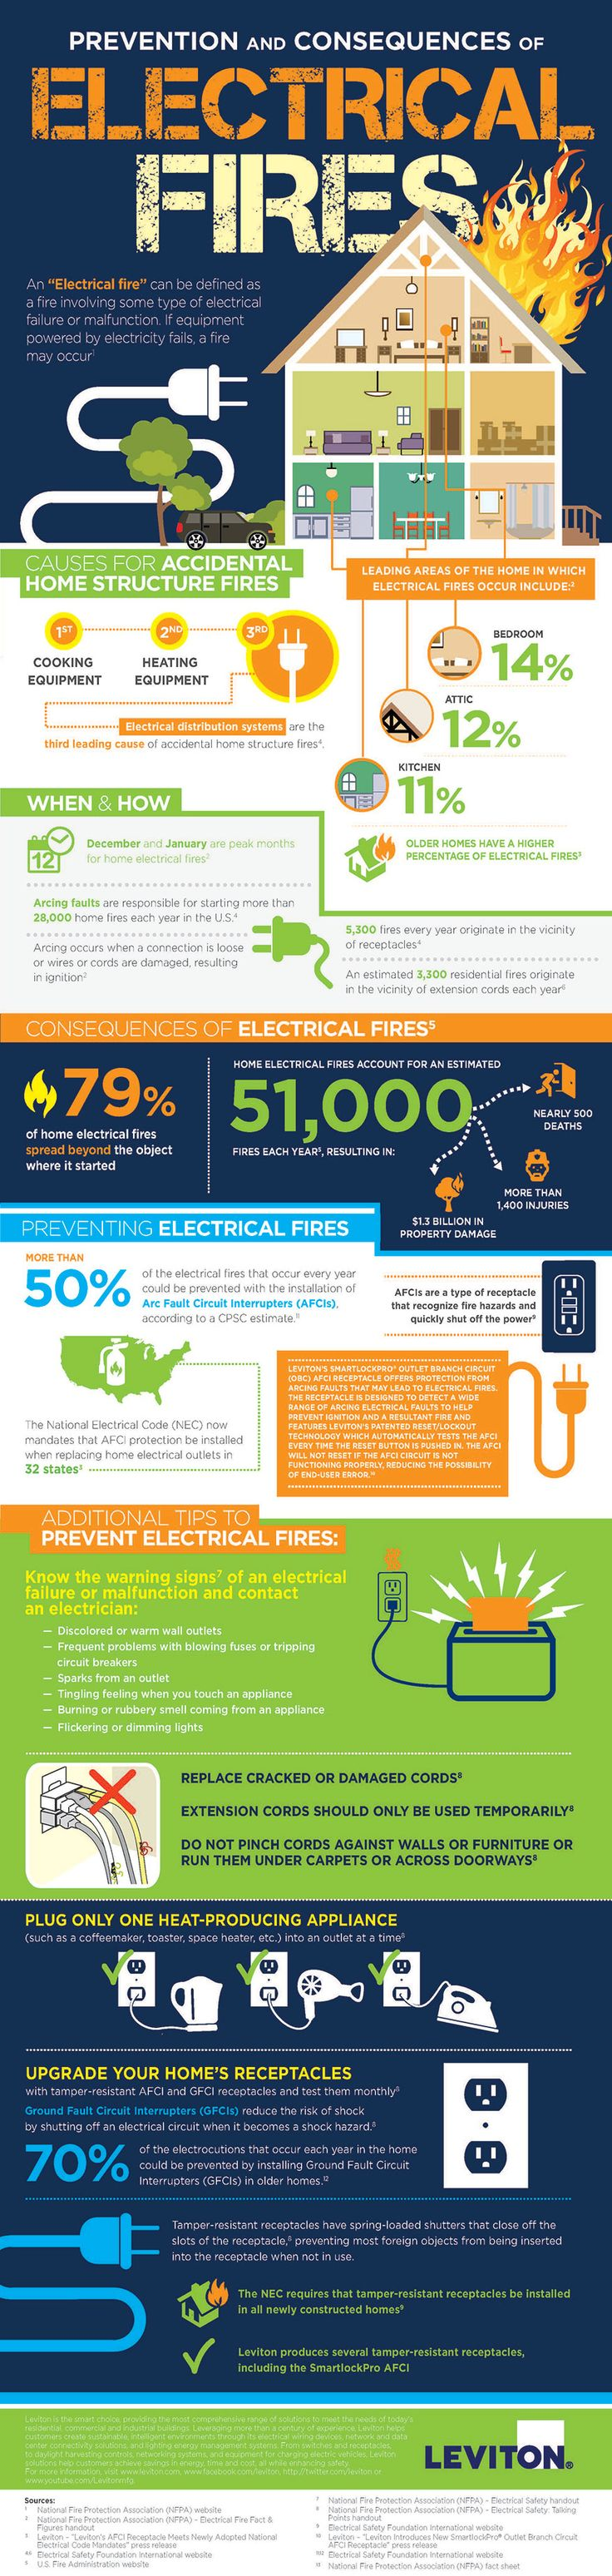 INFOGRAPHIC: Prevention and Consequences of Electrical Fires